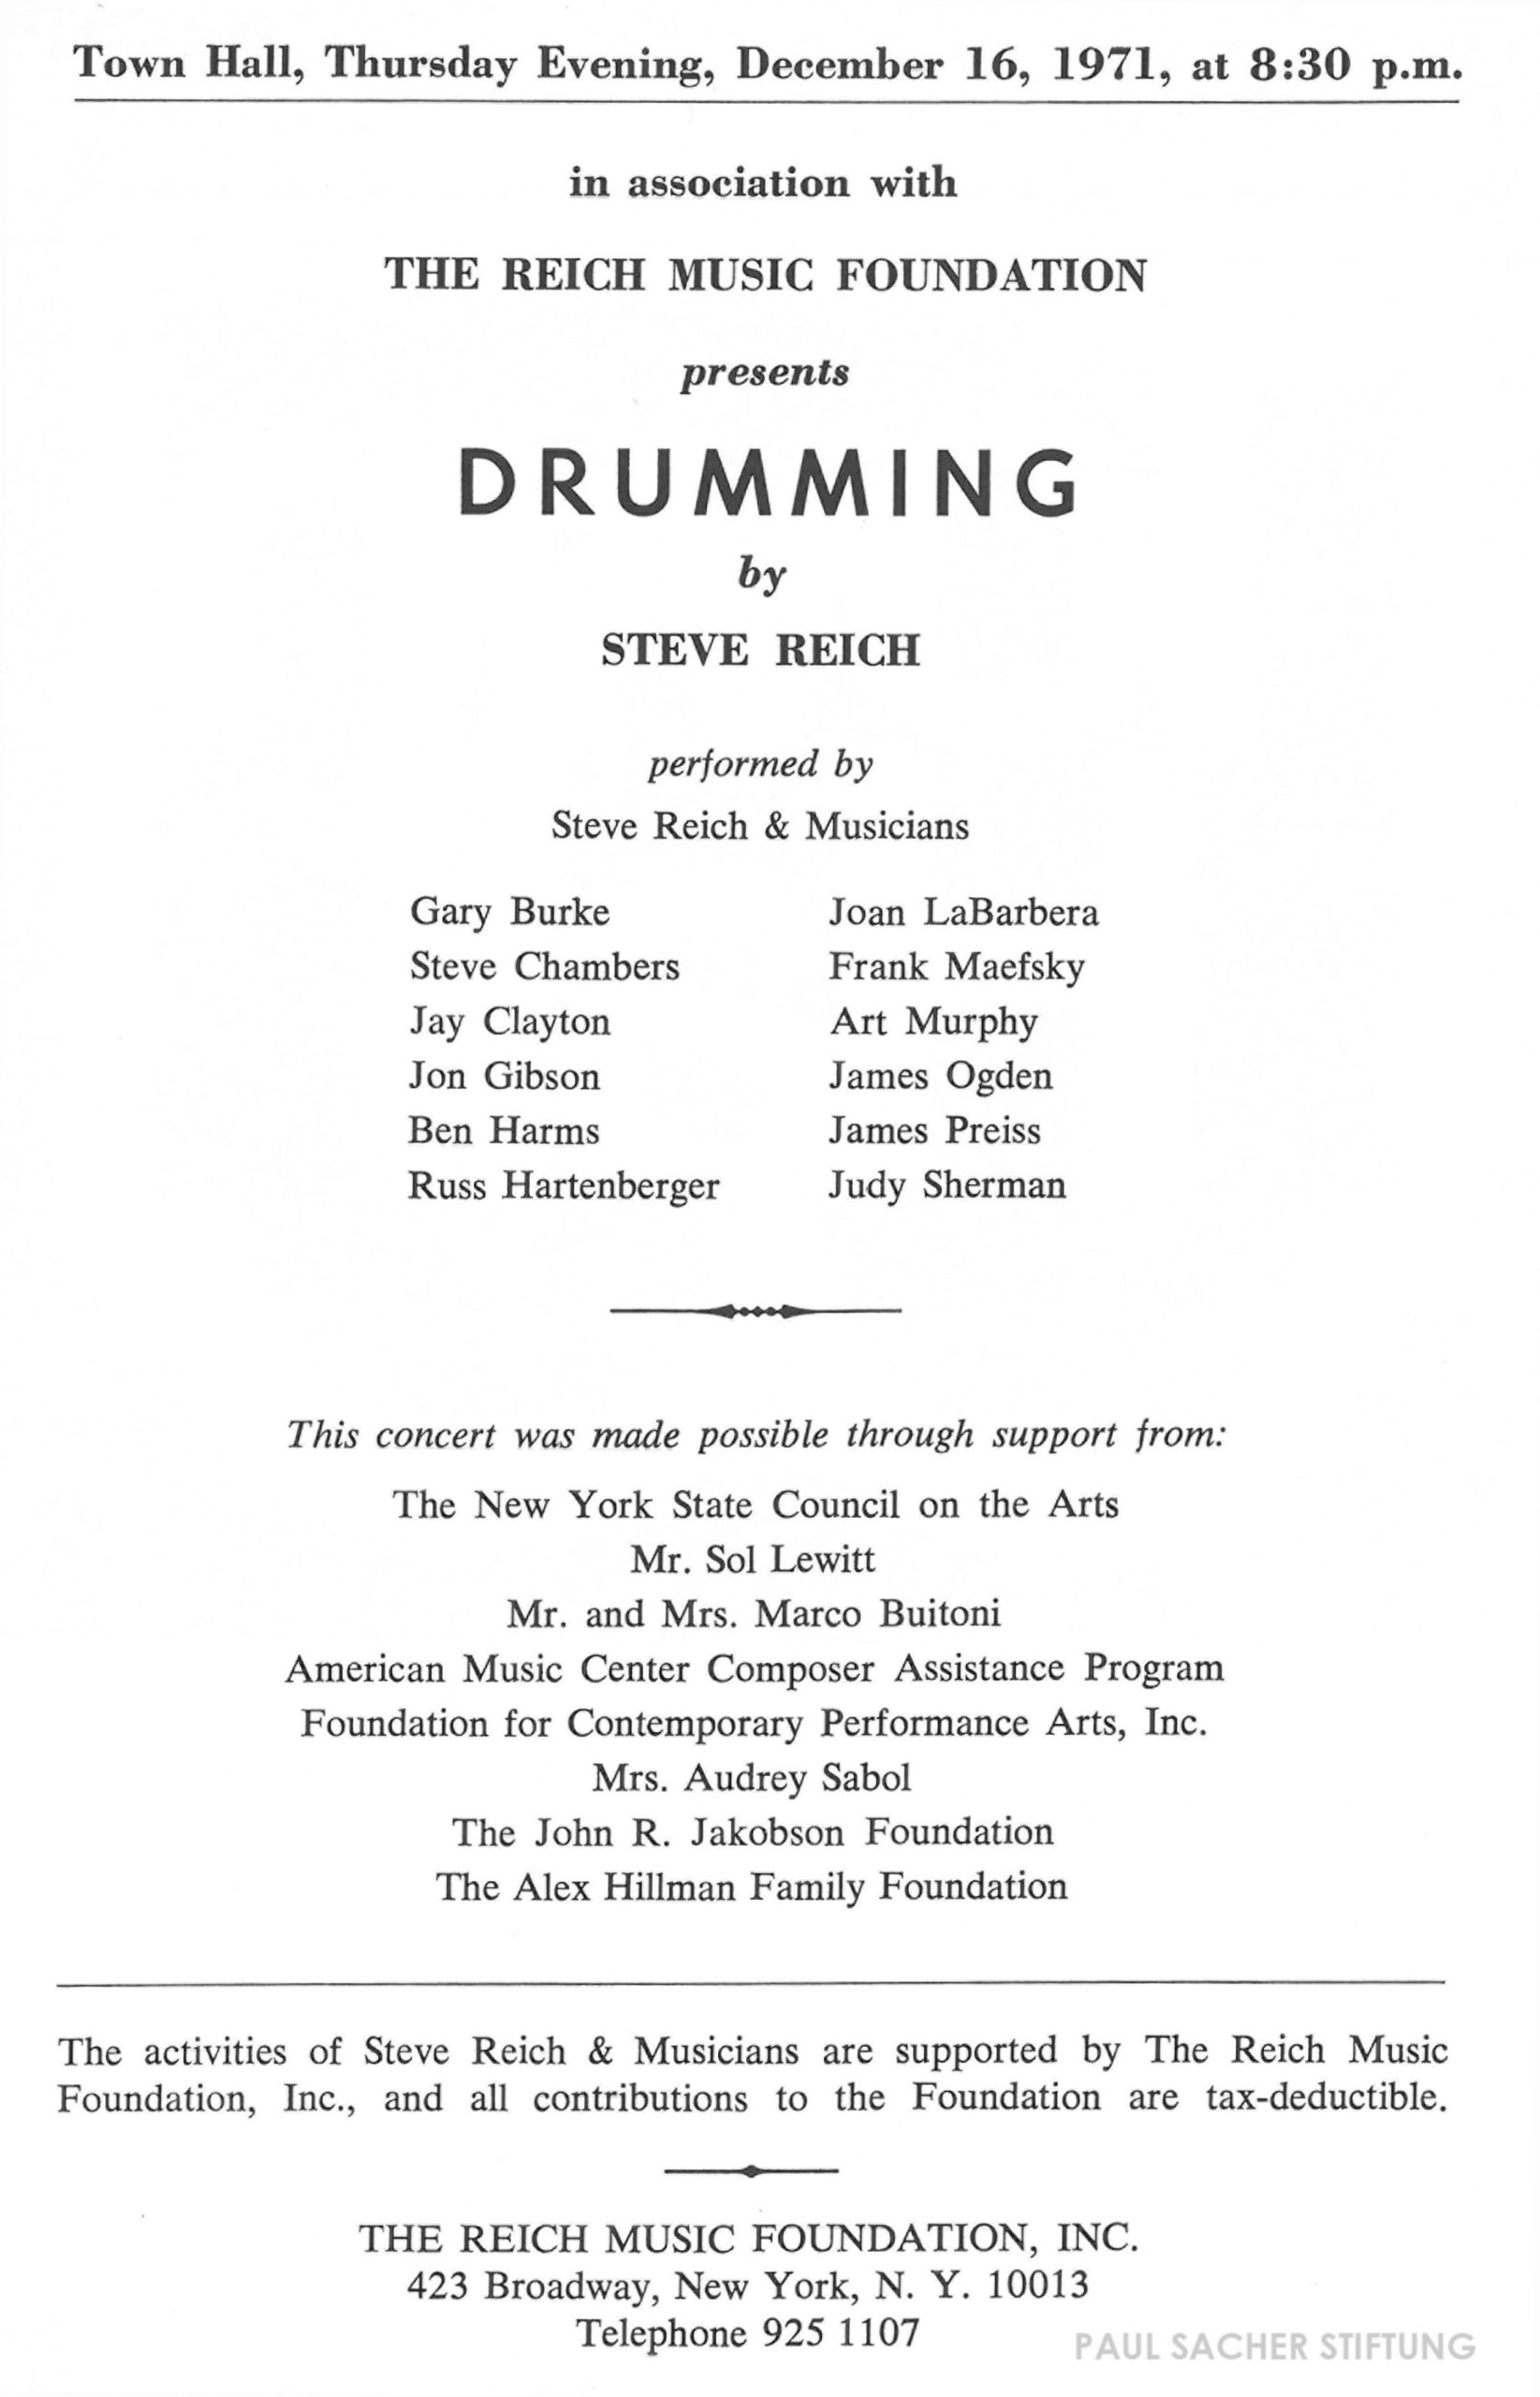 Program for Town Hall premiere of Drumming